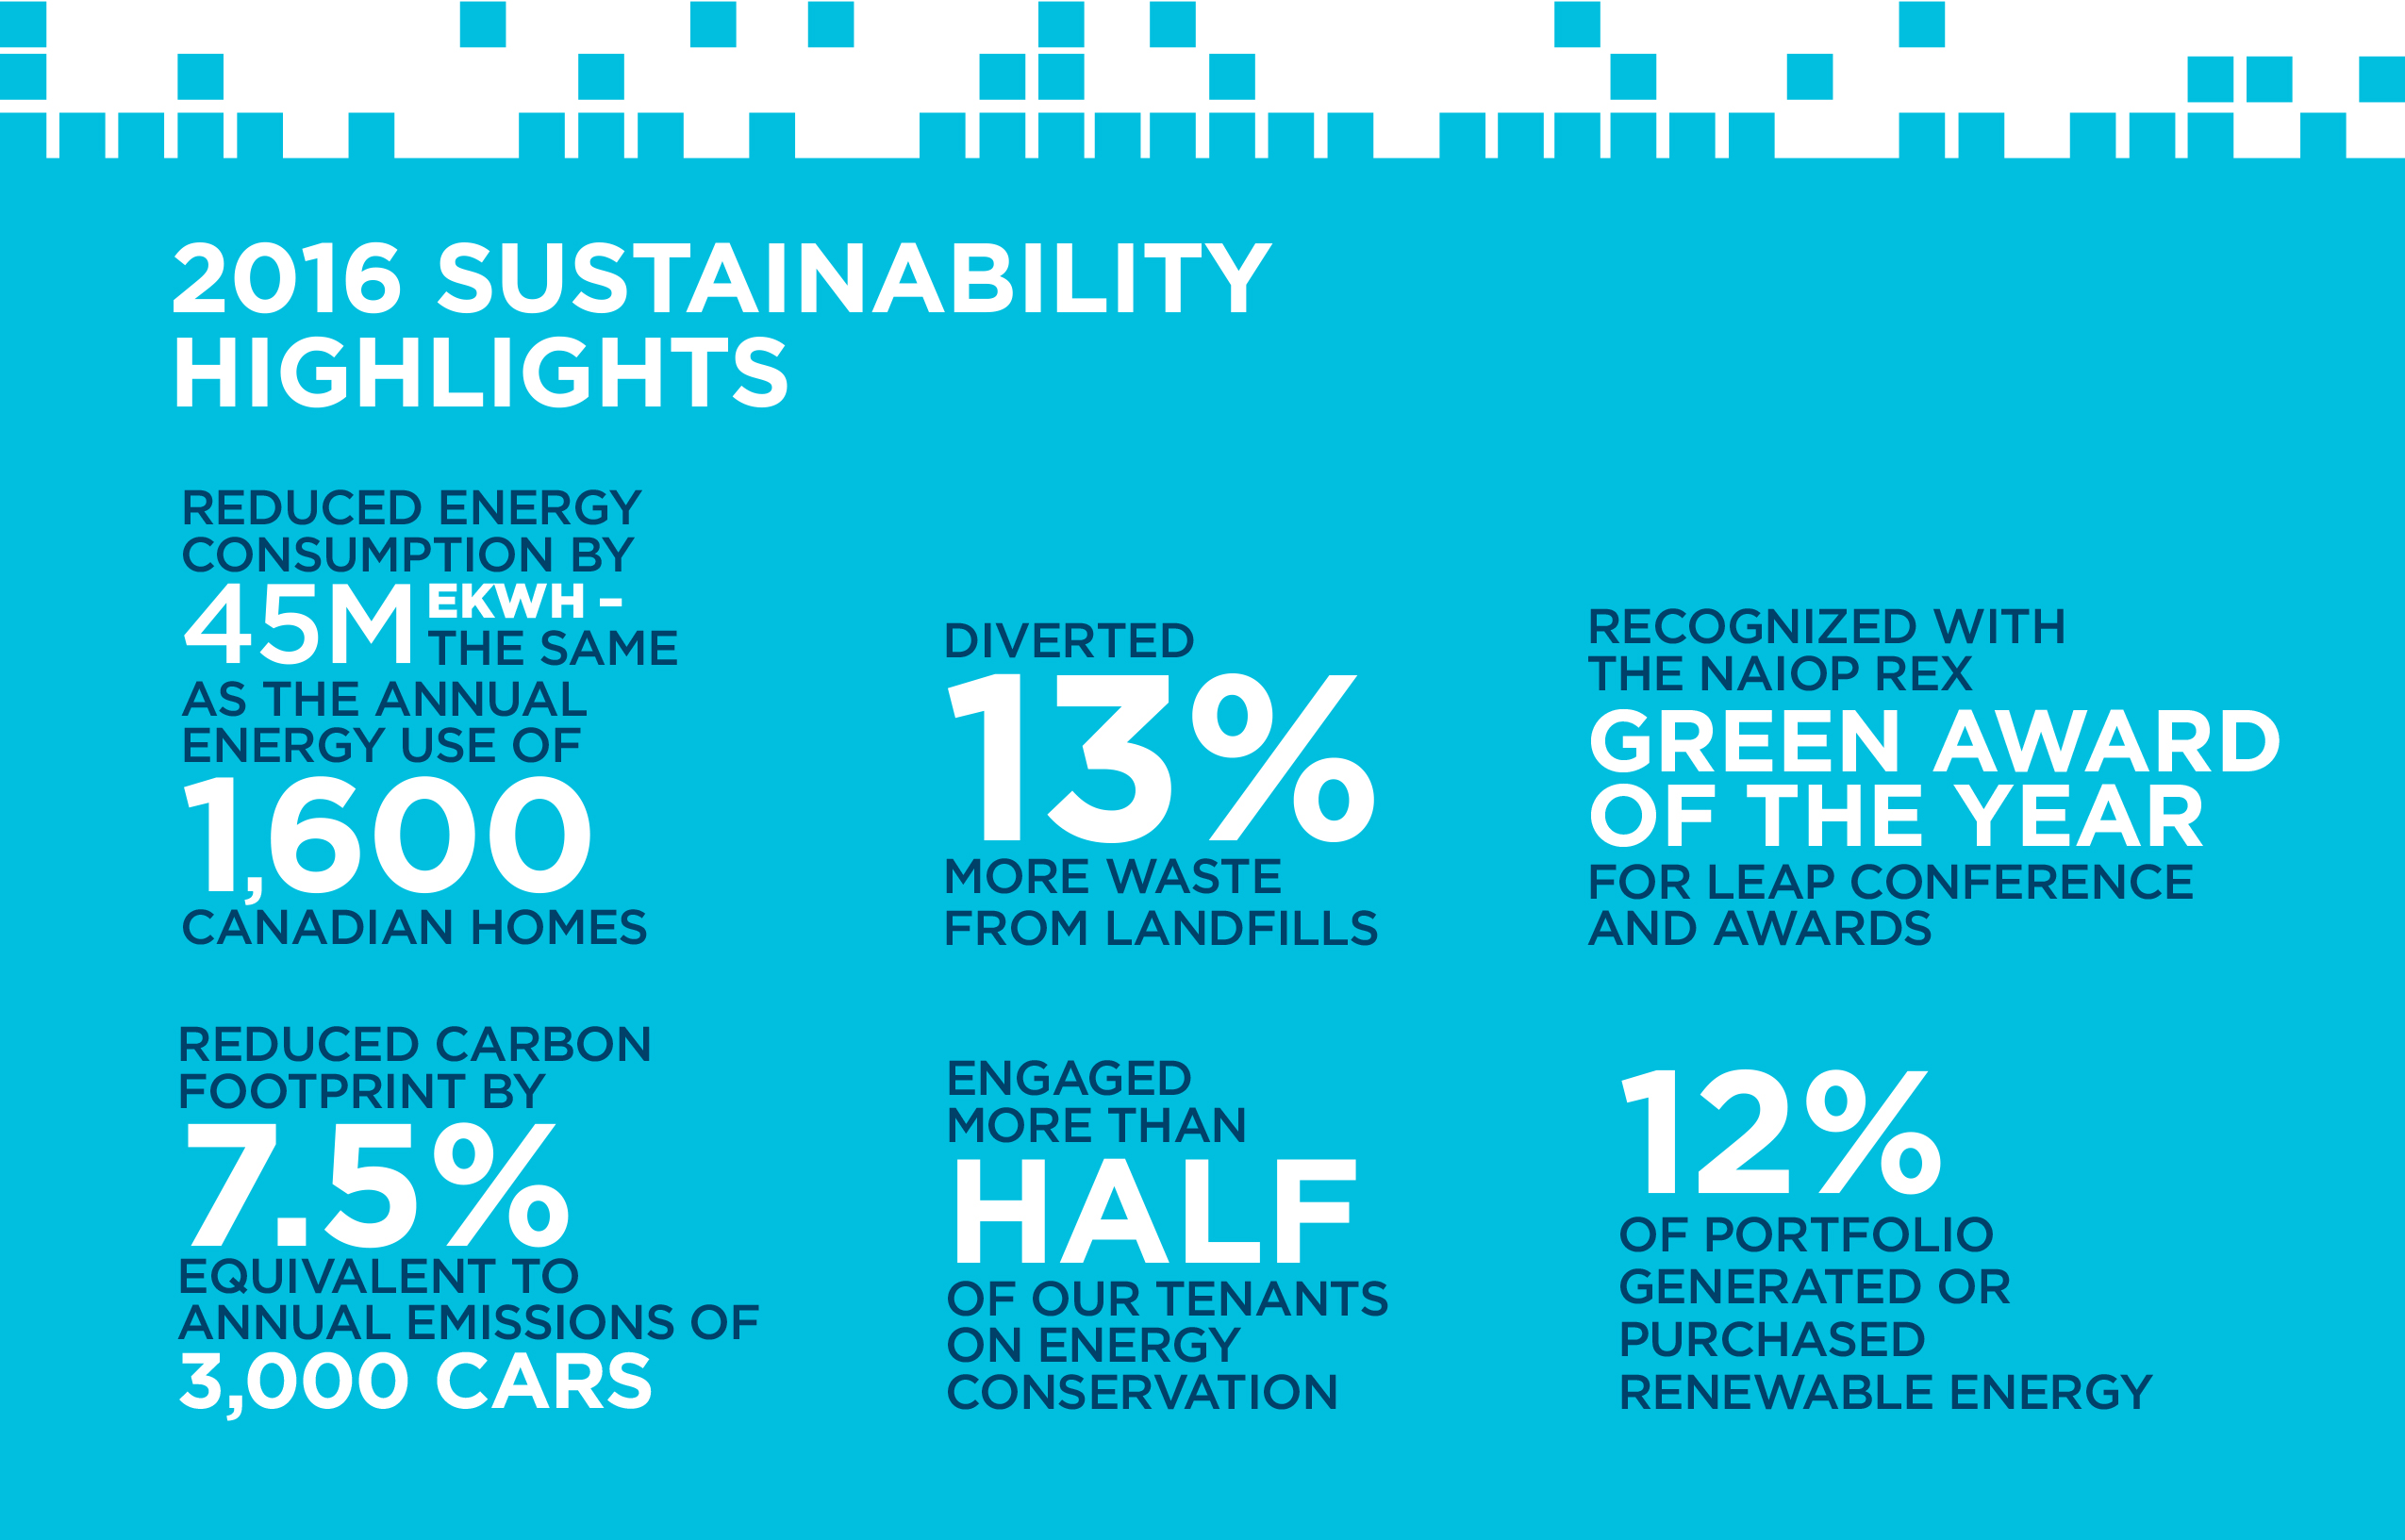 2016 Sustainability Highlights